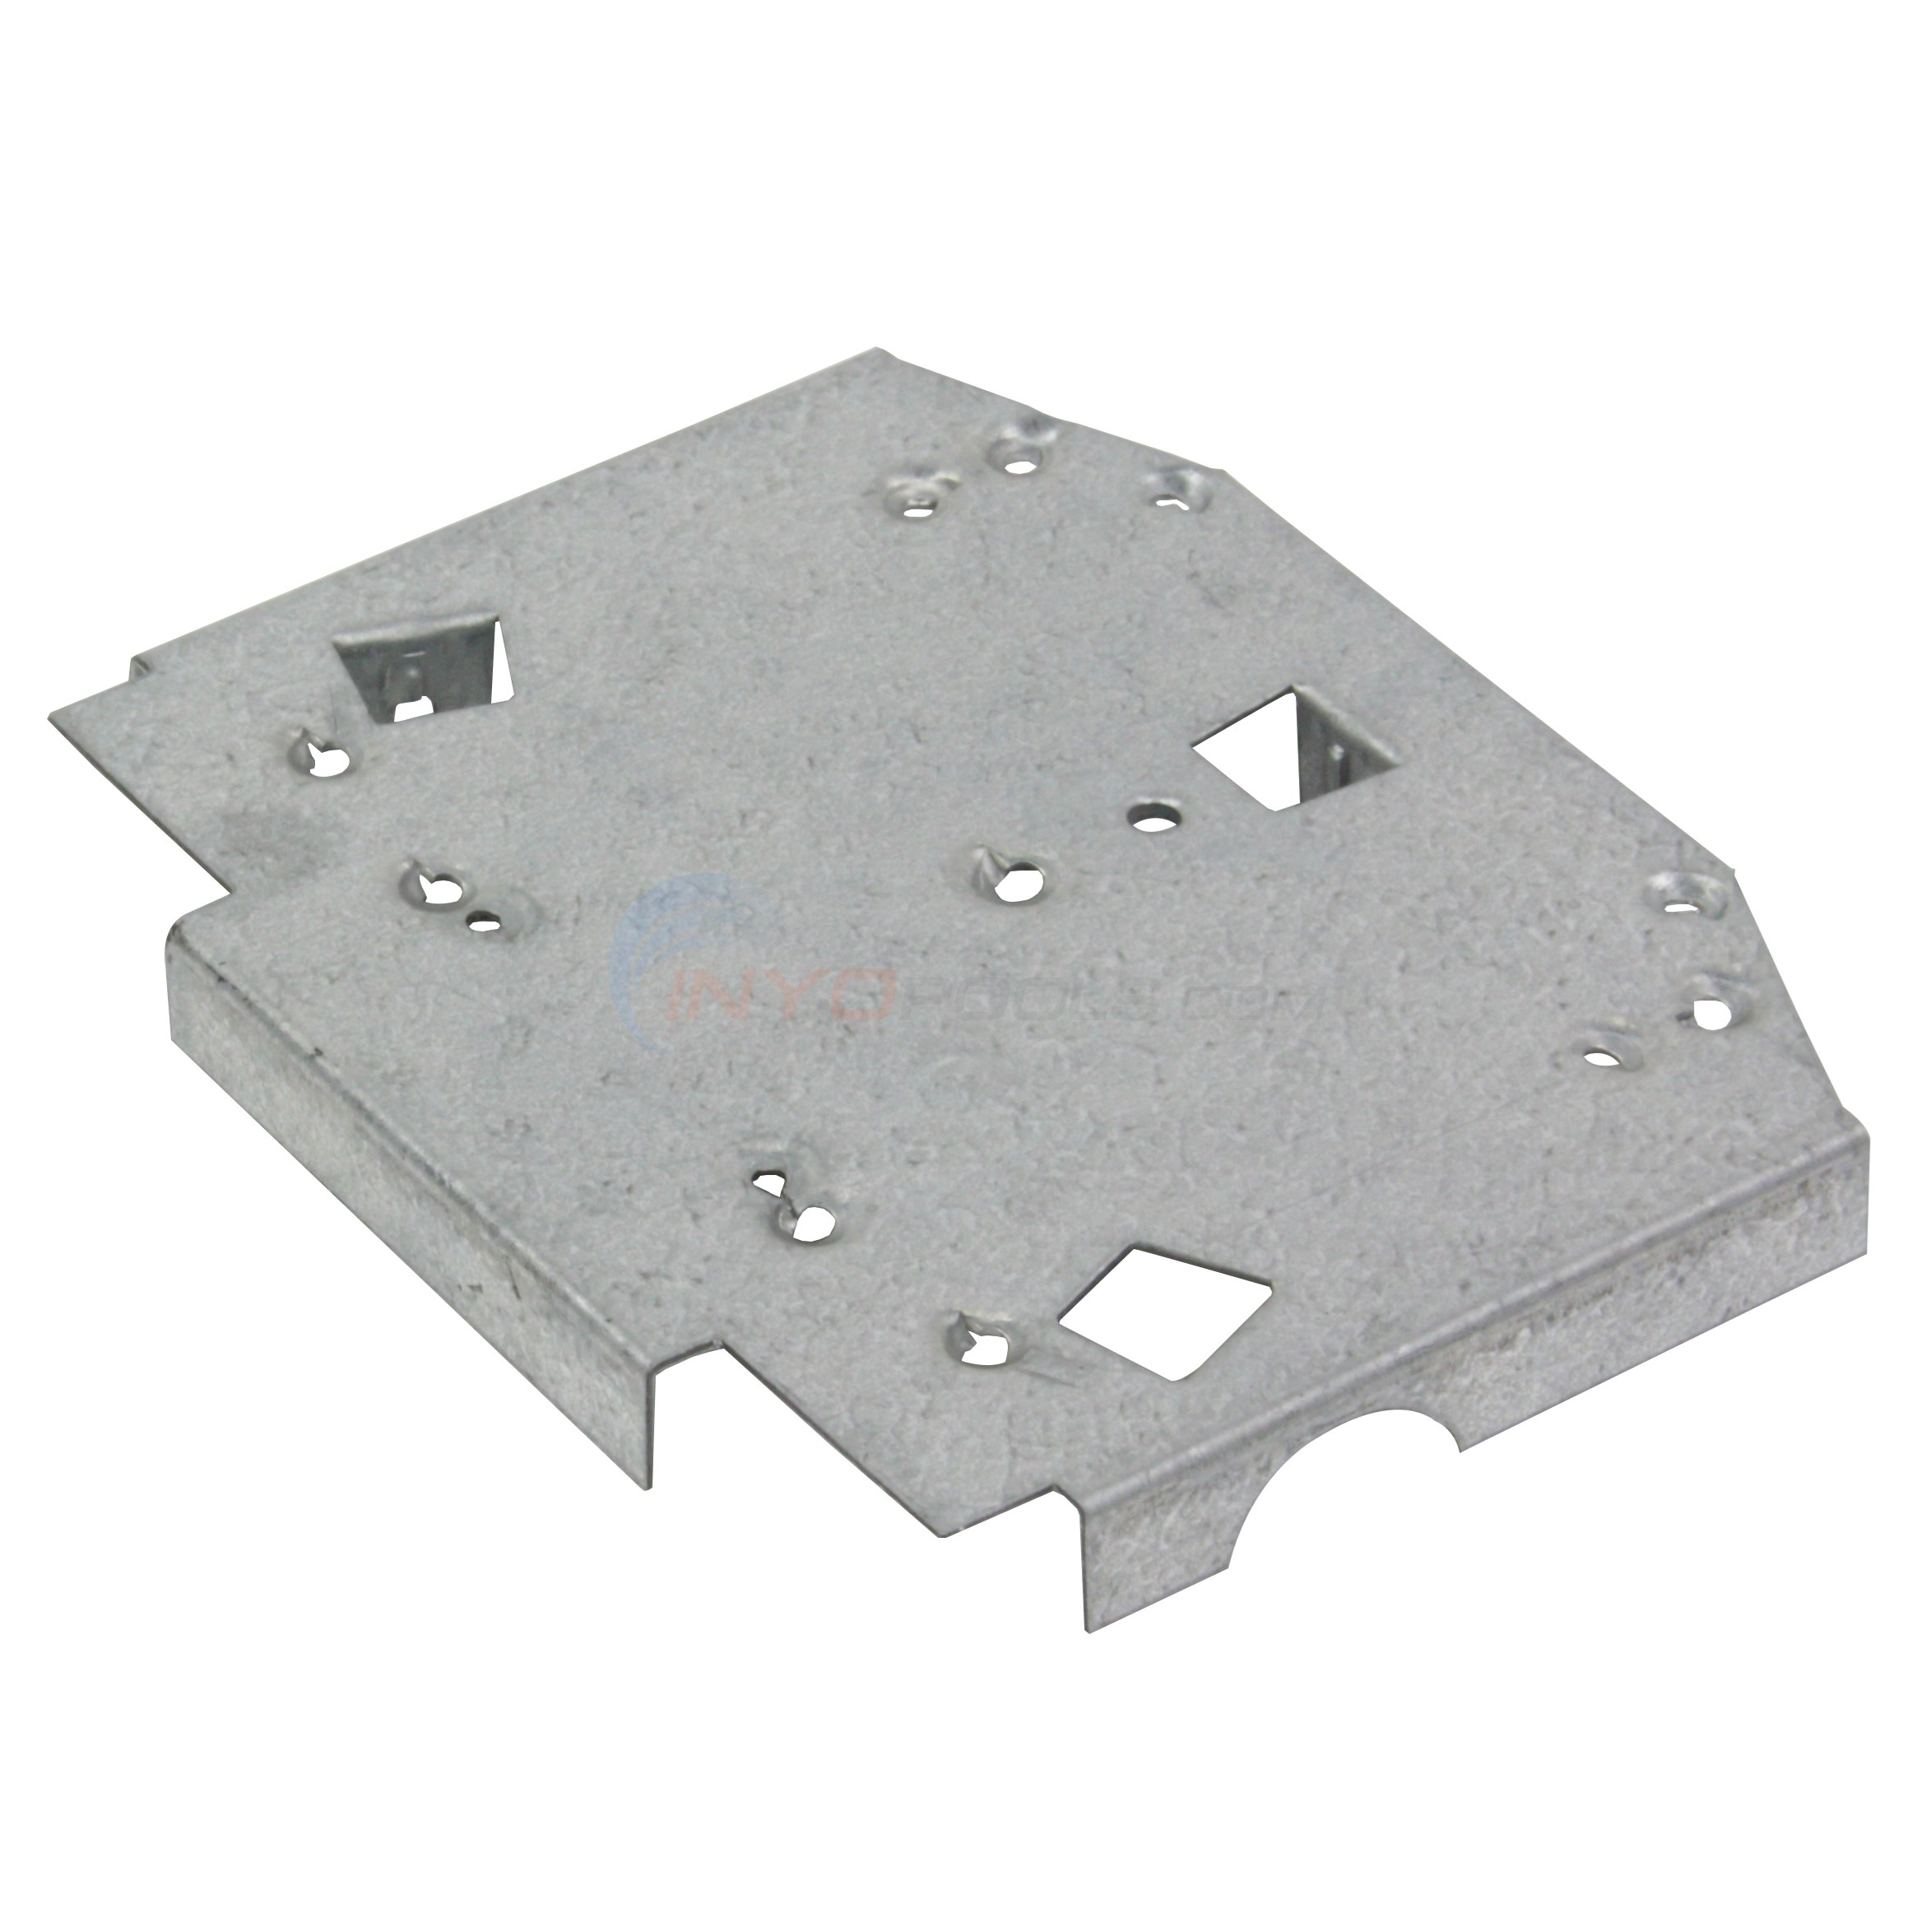 "Wilbar Top Plate 6"" Half Moon SOL/SOL II/EQU (Single) - 14693"